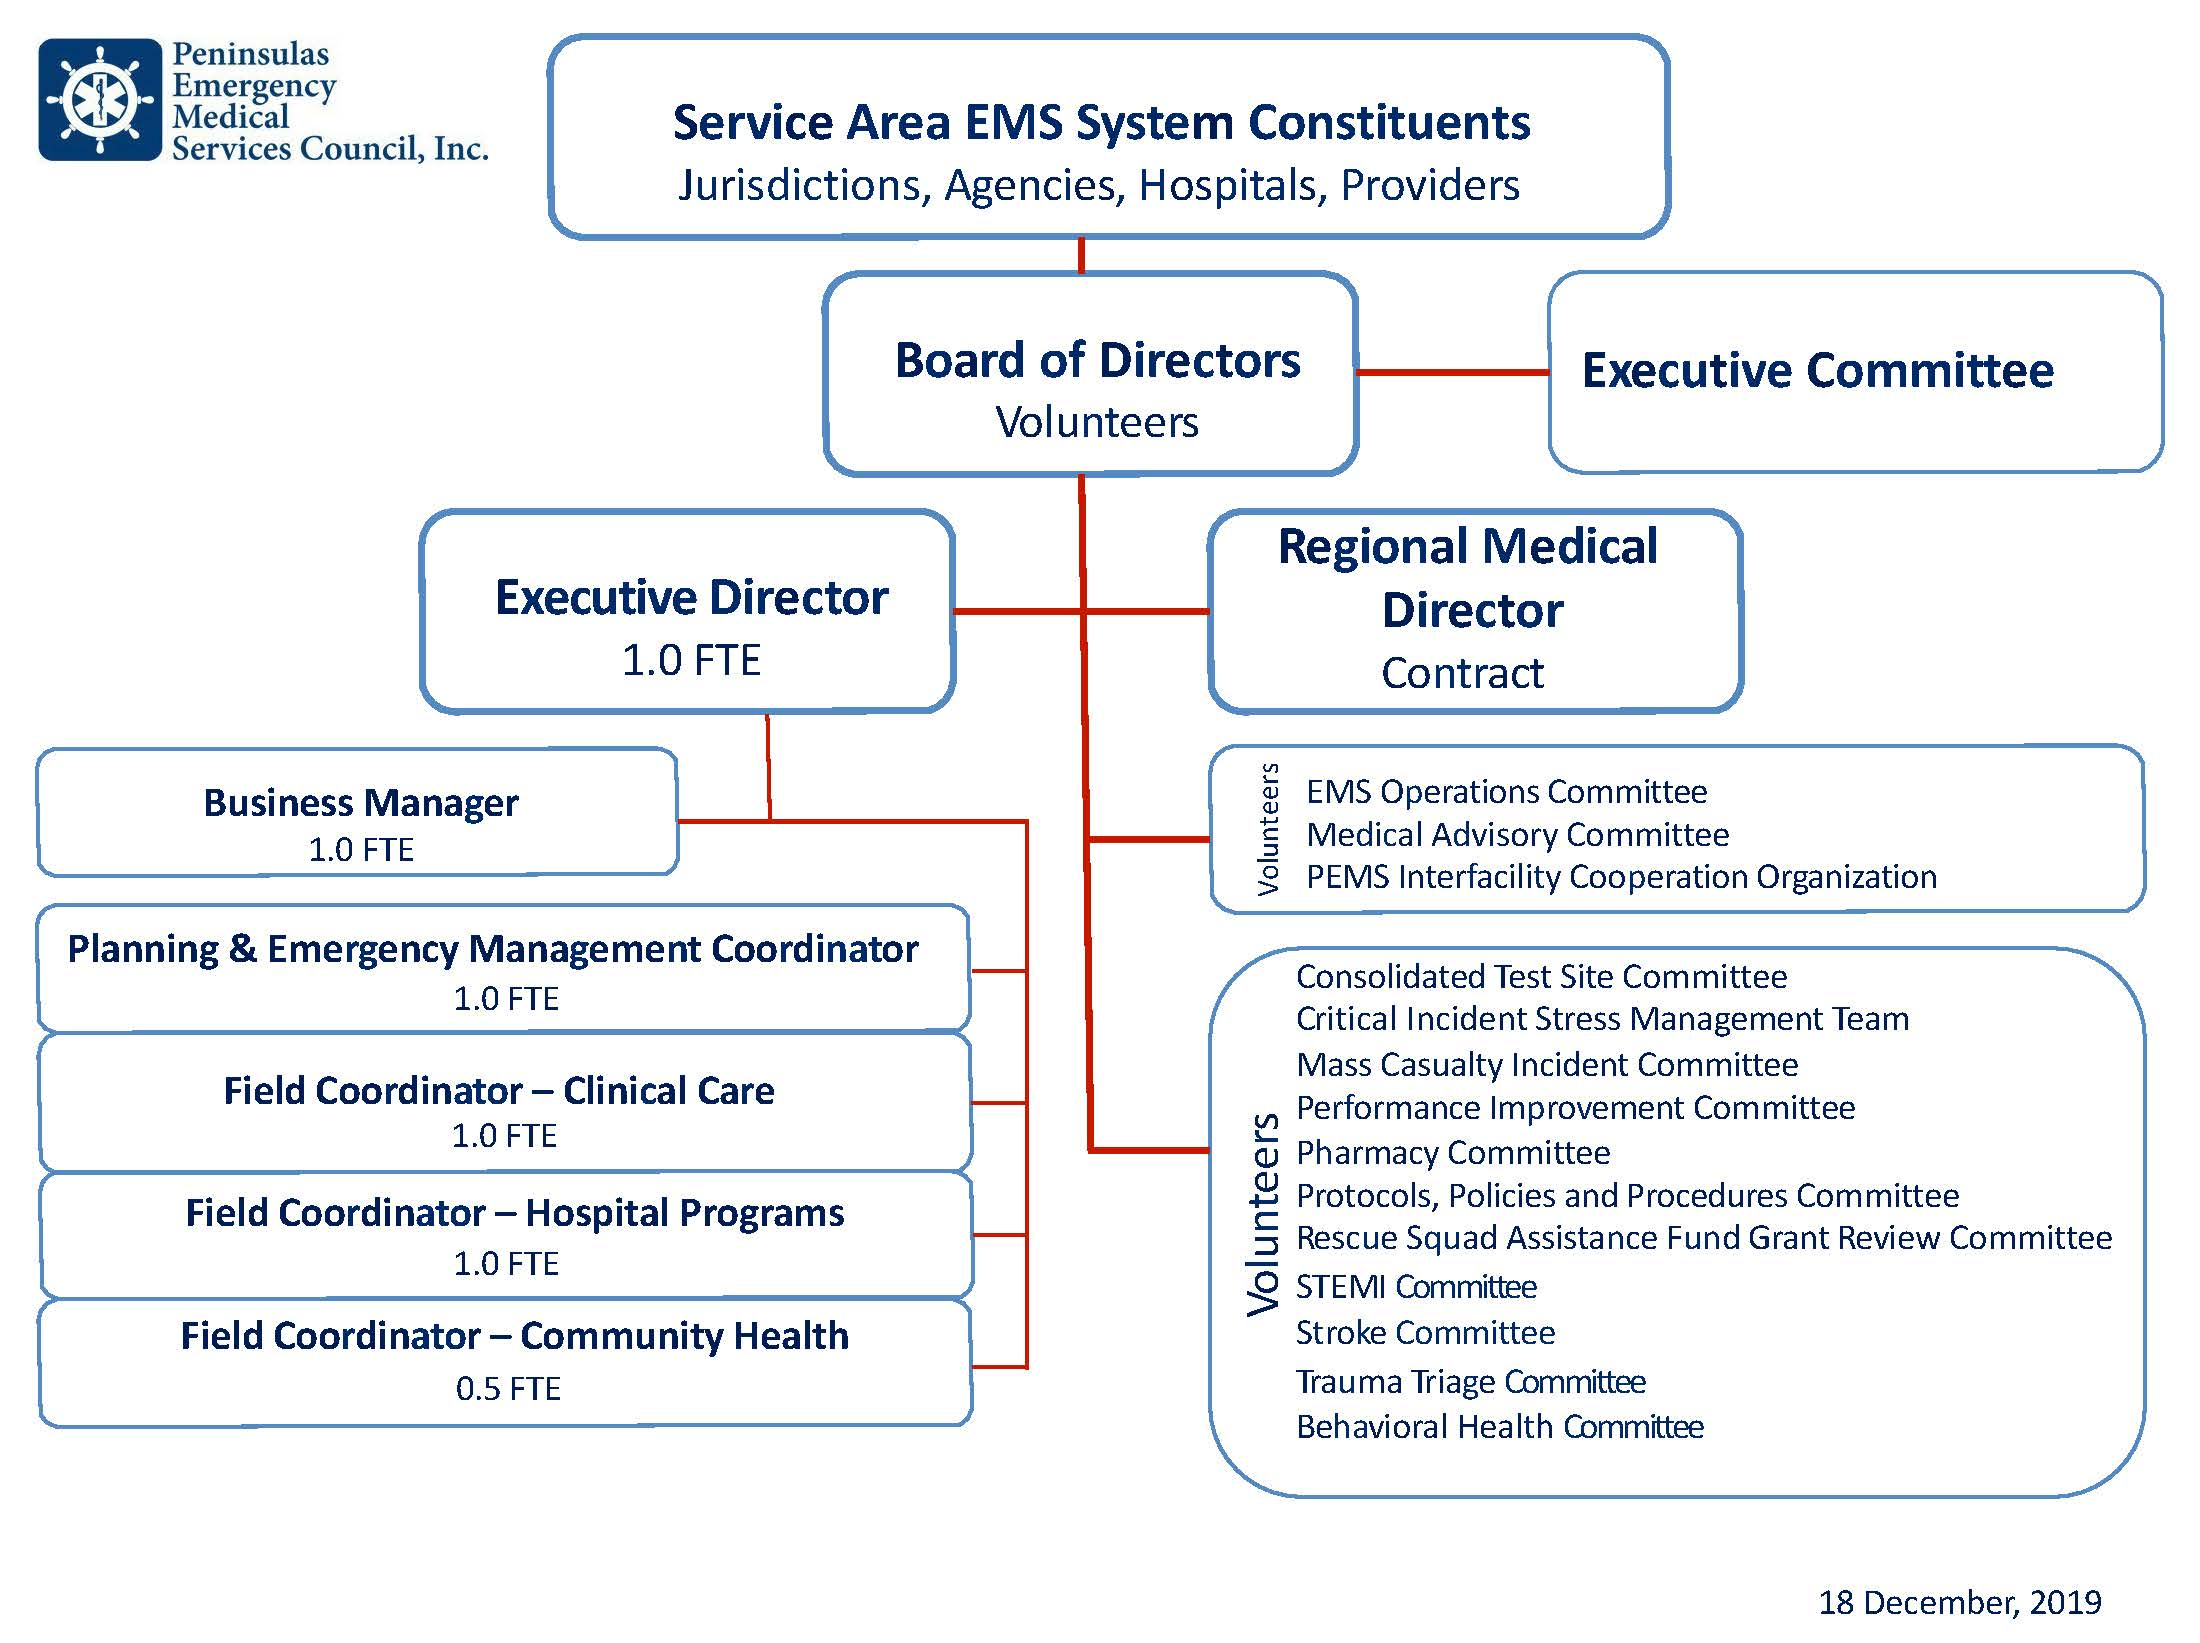 PEMS Organization Structure 12 18 19